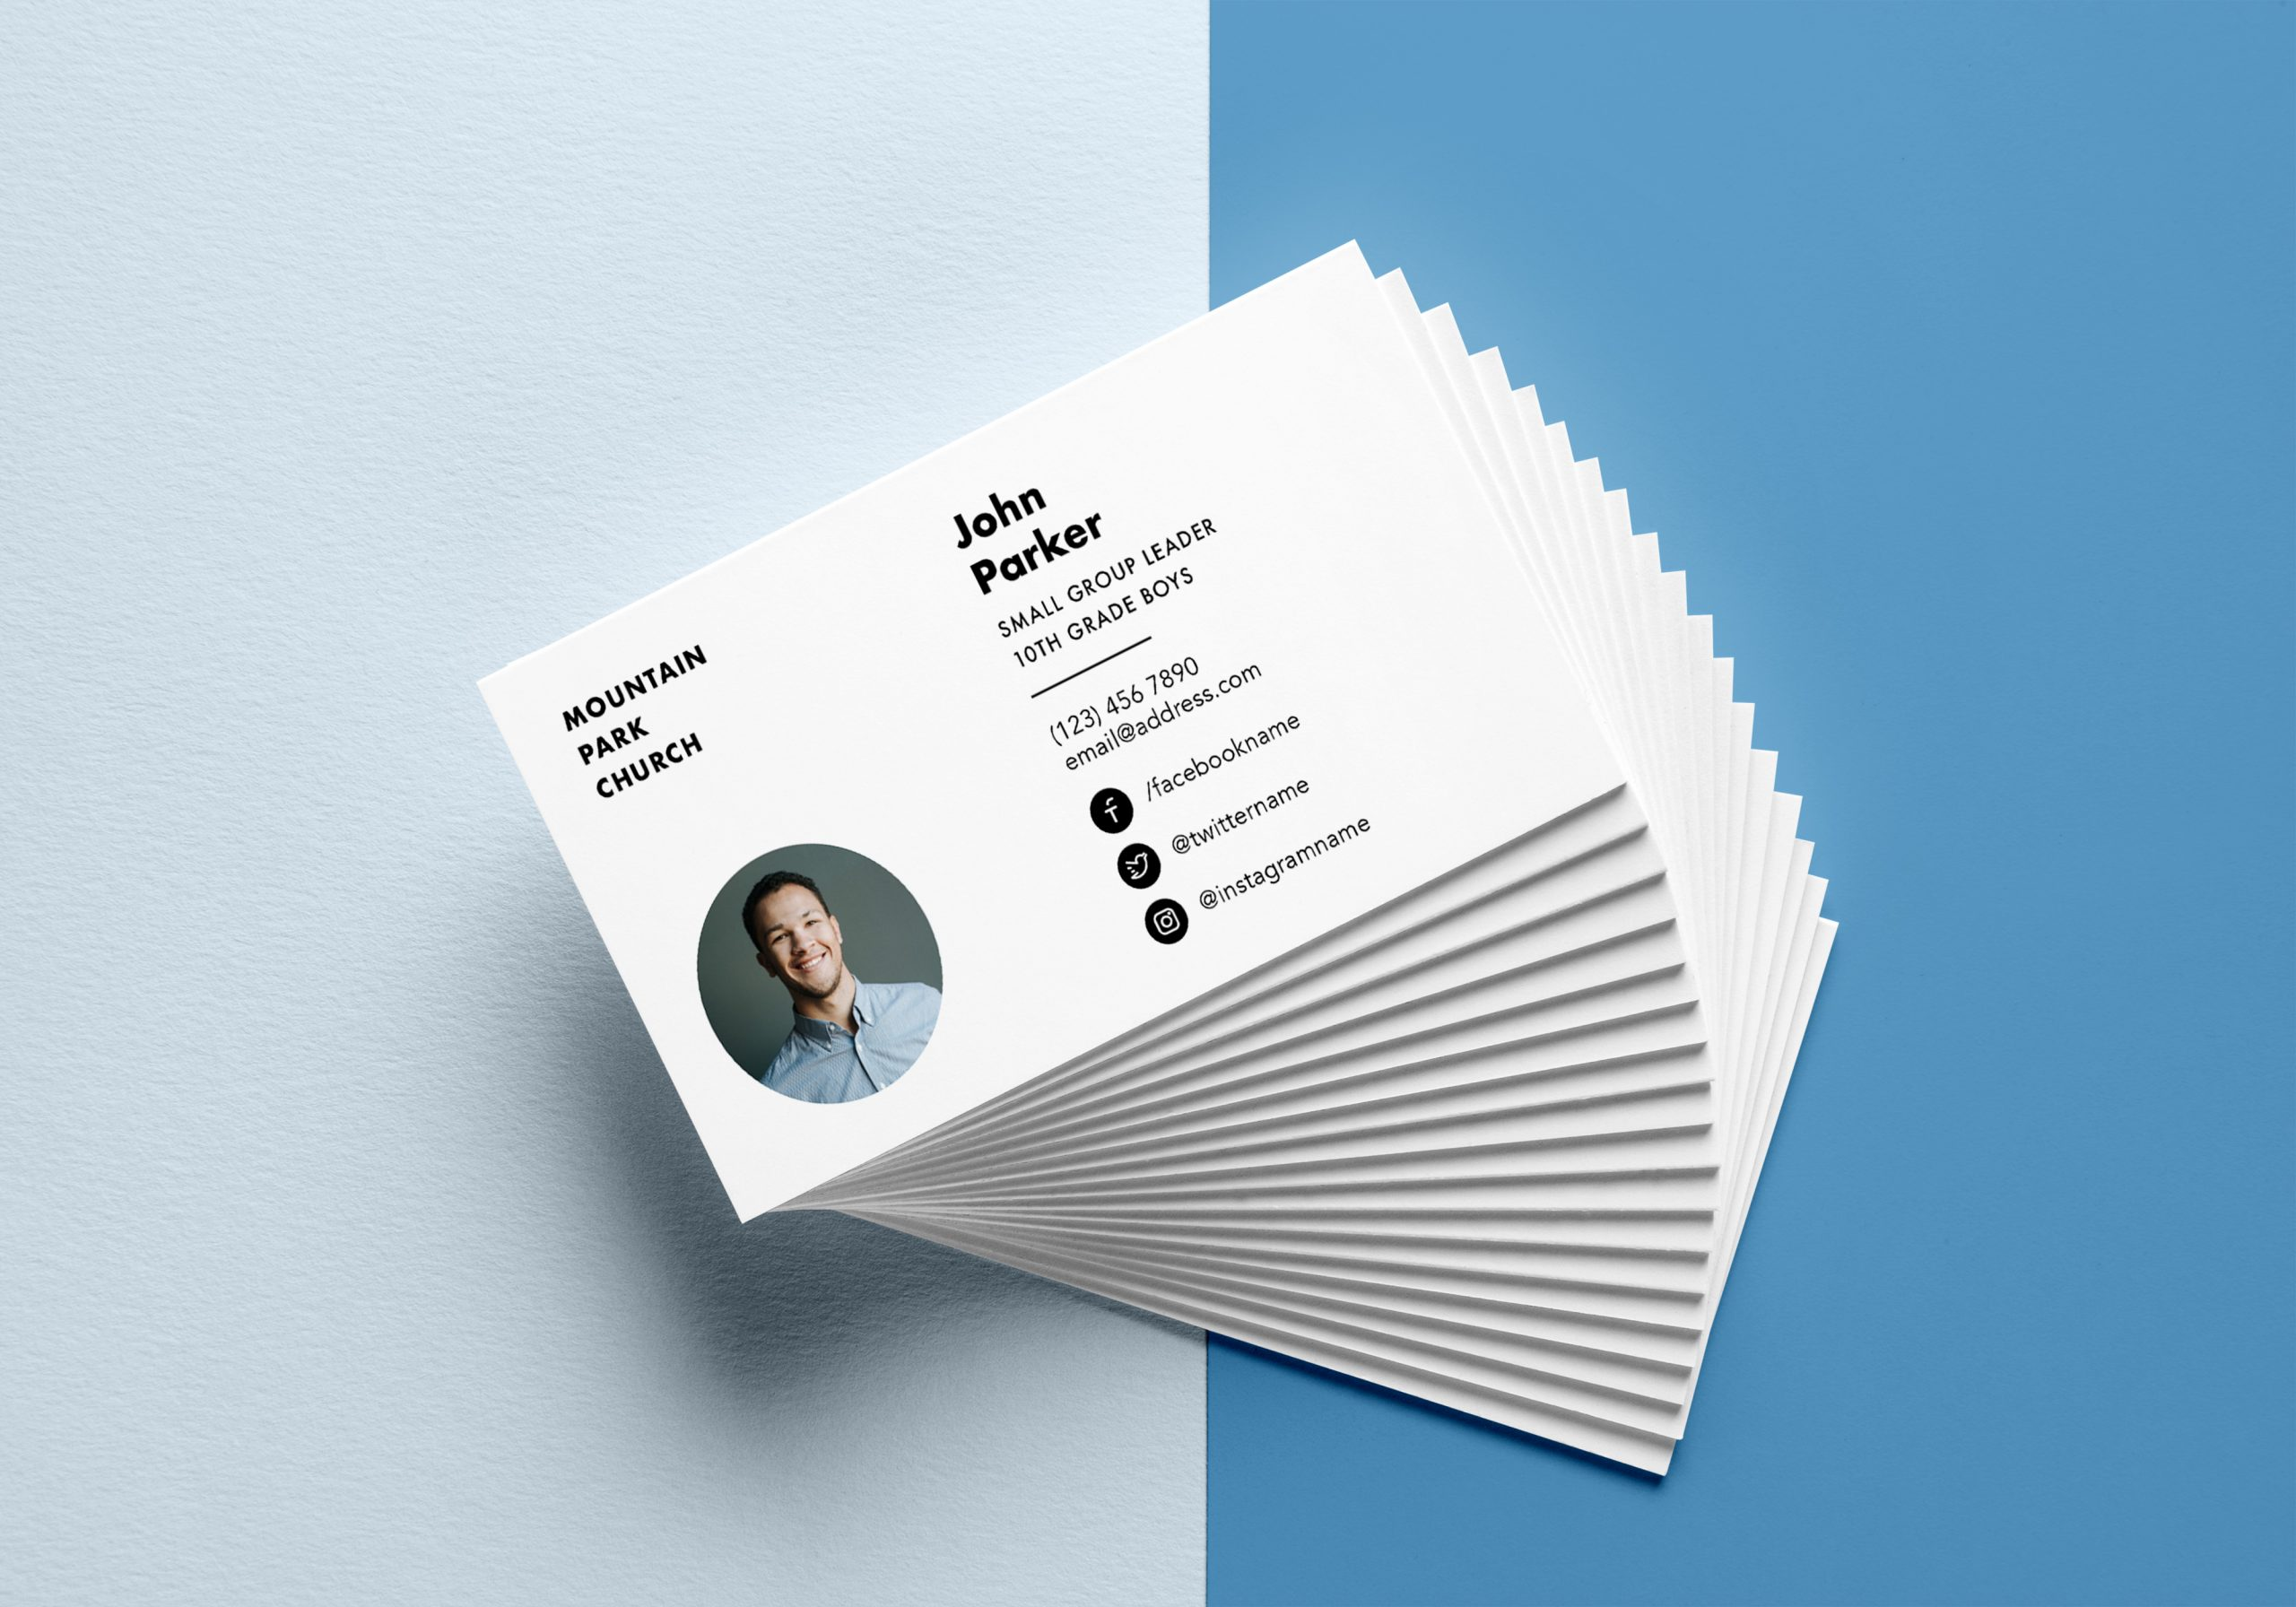 Small Group Leader Business Card